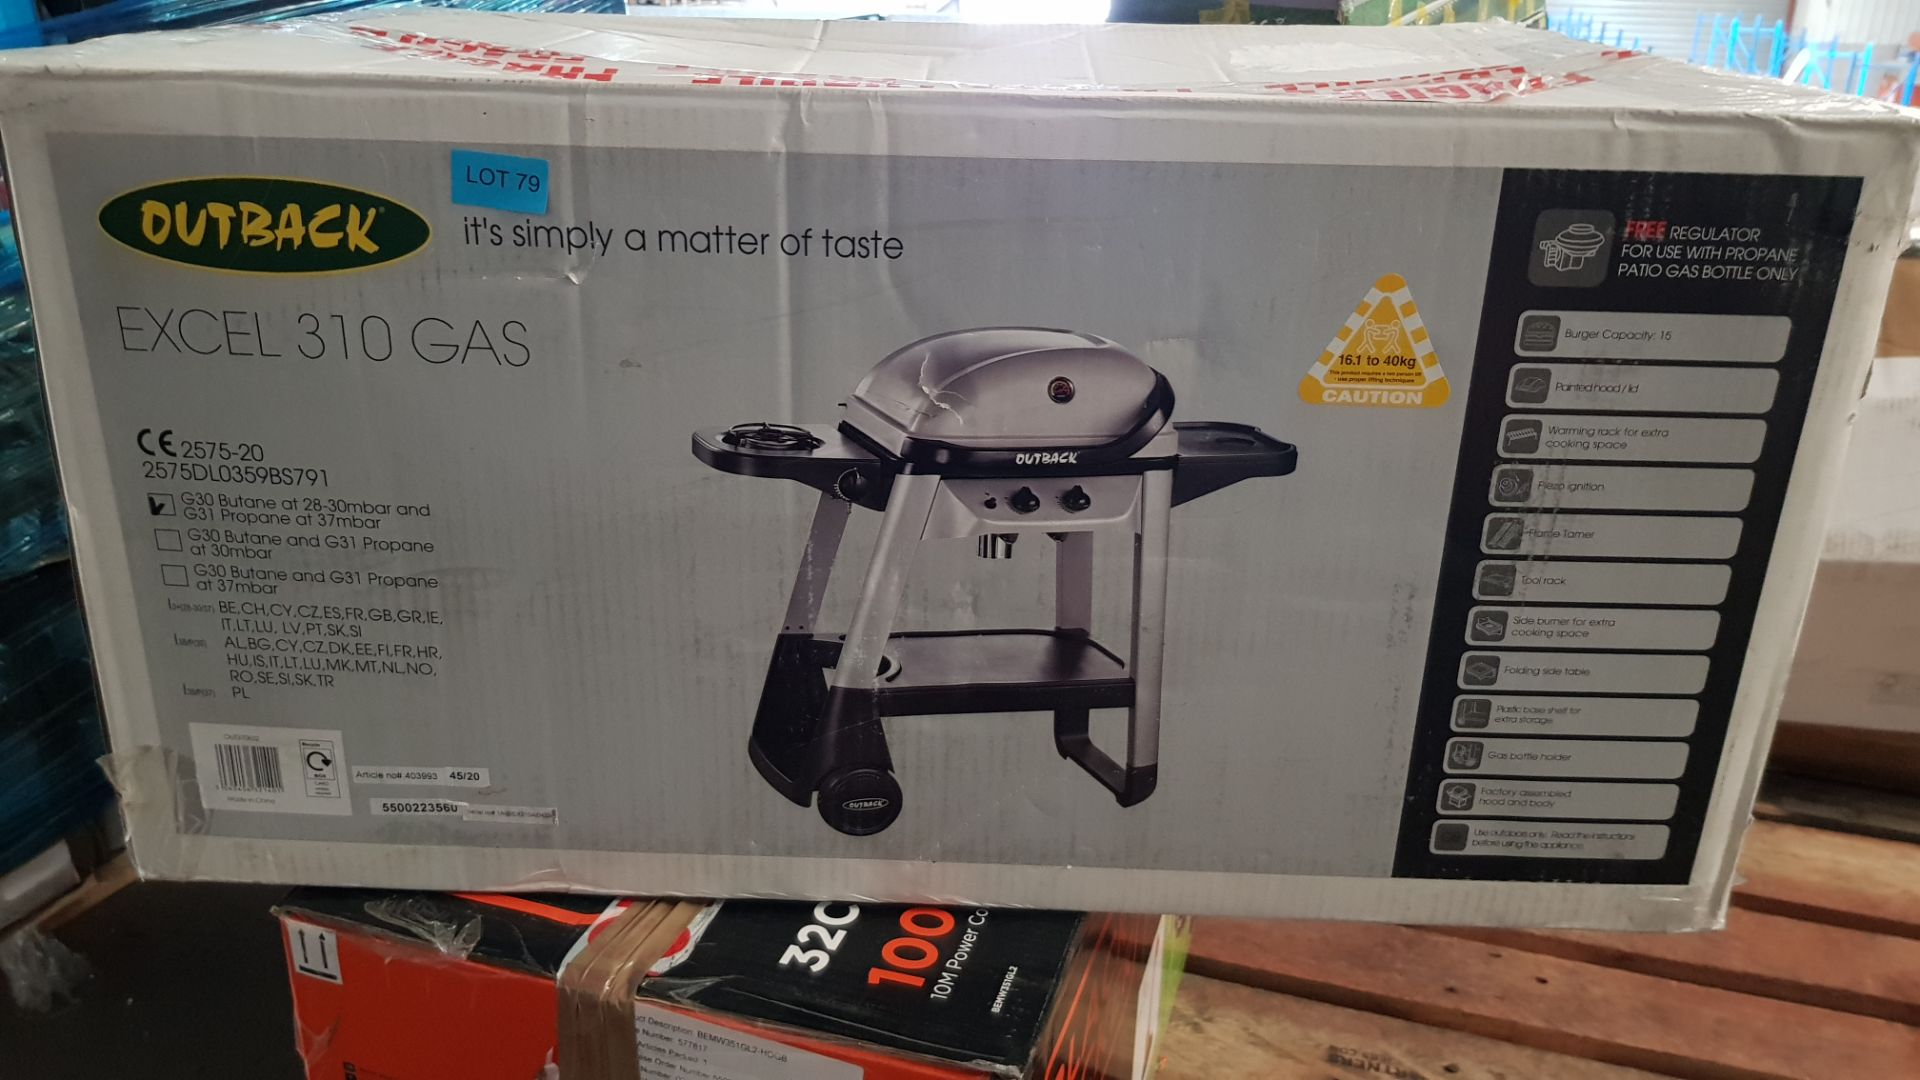 (P5) 1x Outback Excel 310 Gas BBQ Silver RRP £100. Contents Appear Clean, Unused In Original Package - Image 3 of 5